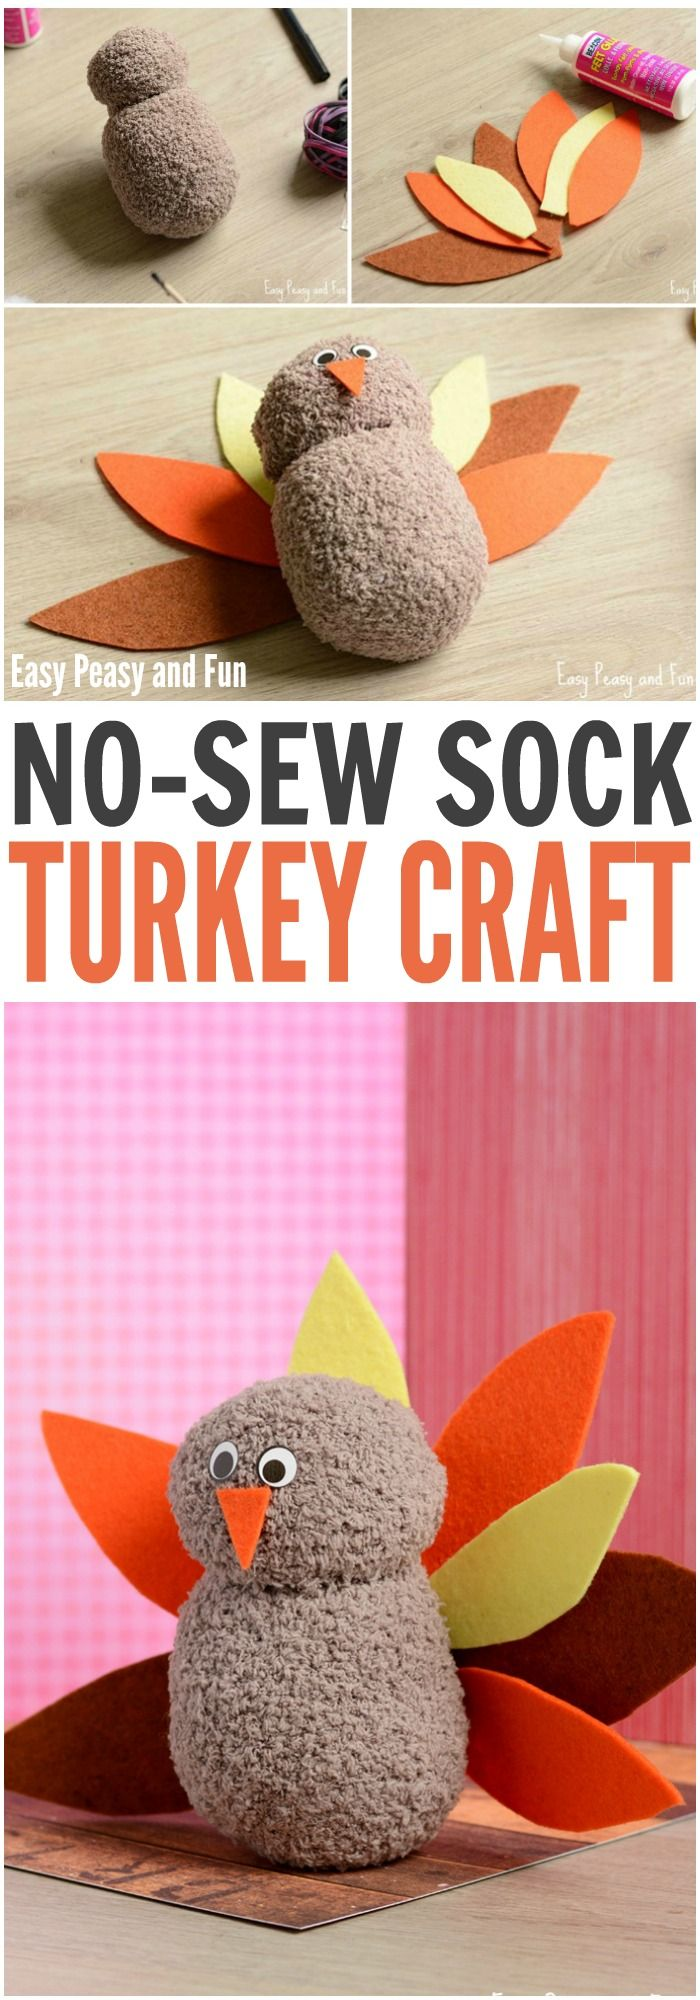 Check out his adorable no-sew turkey craft! Perfect Thanksgiving  craft!